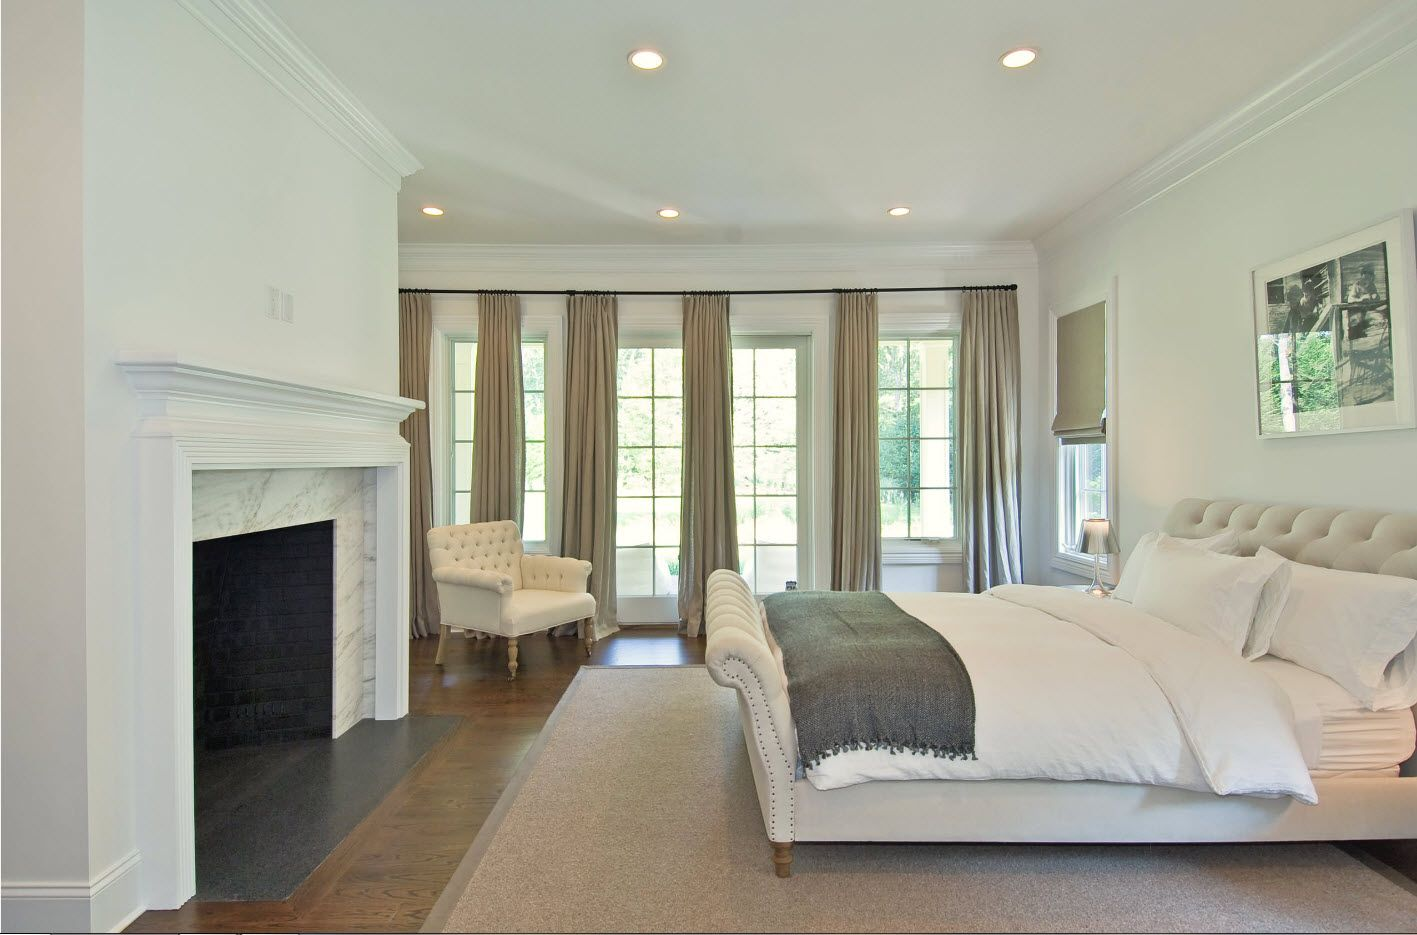 Sapcious modern interior of the royal finished bedroom with fireplace